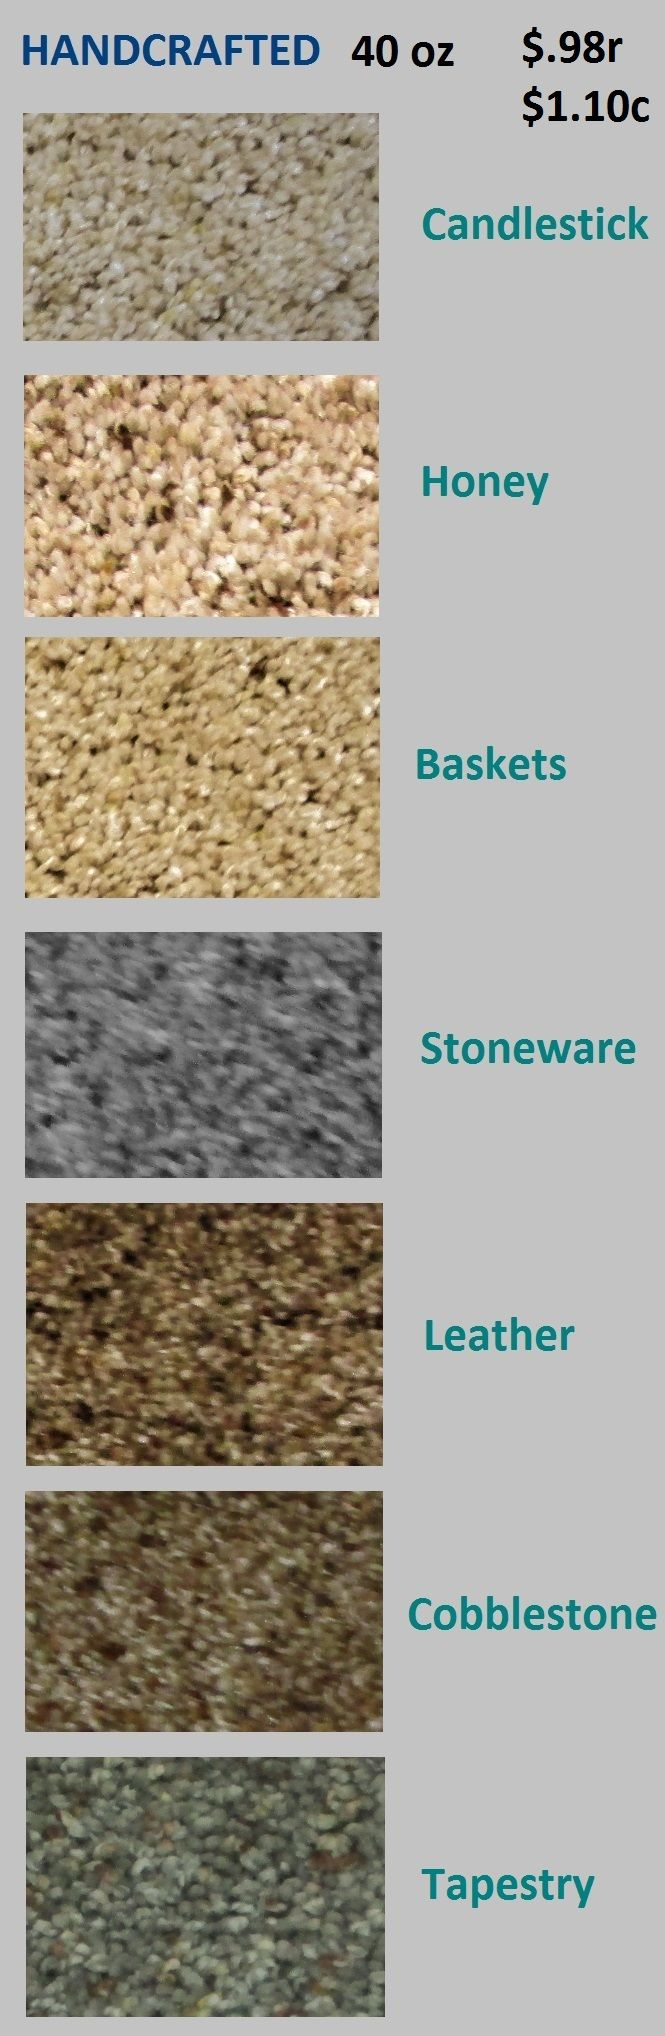 Discounted first quality carpet and pad. Many styles and colors to choose from.